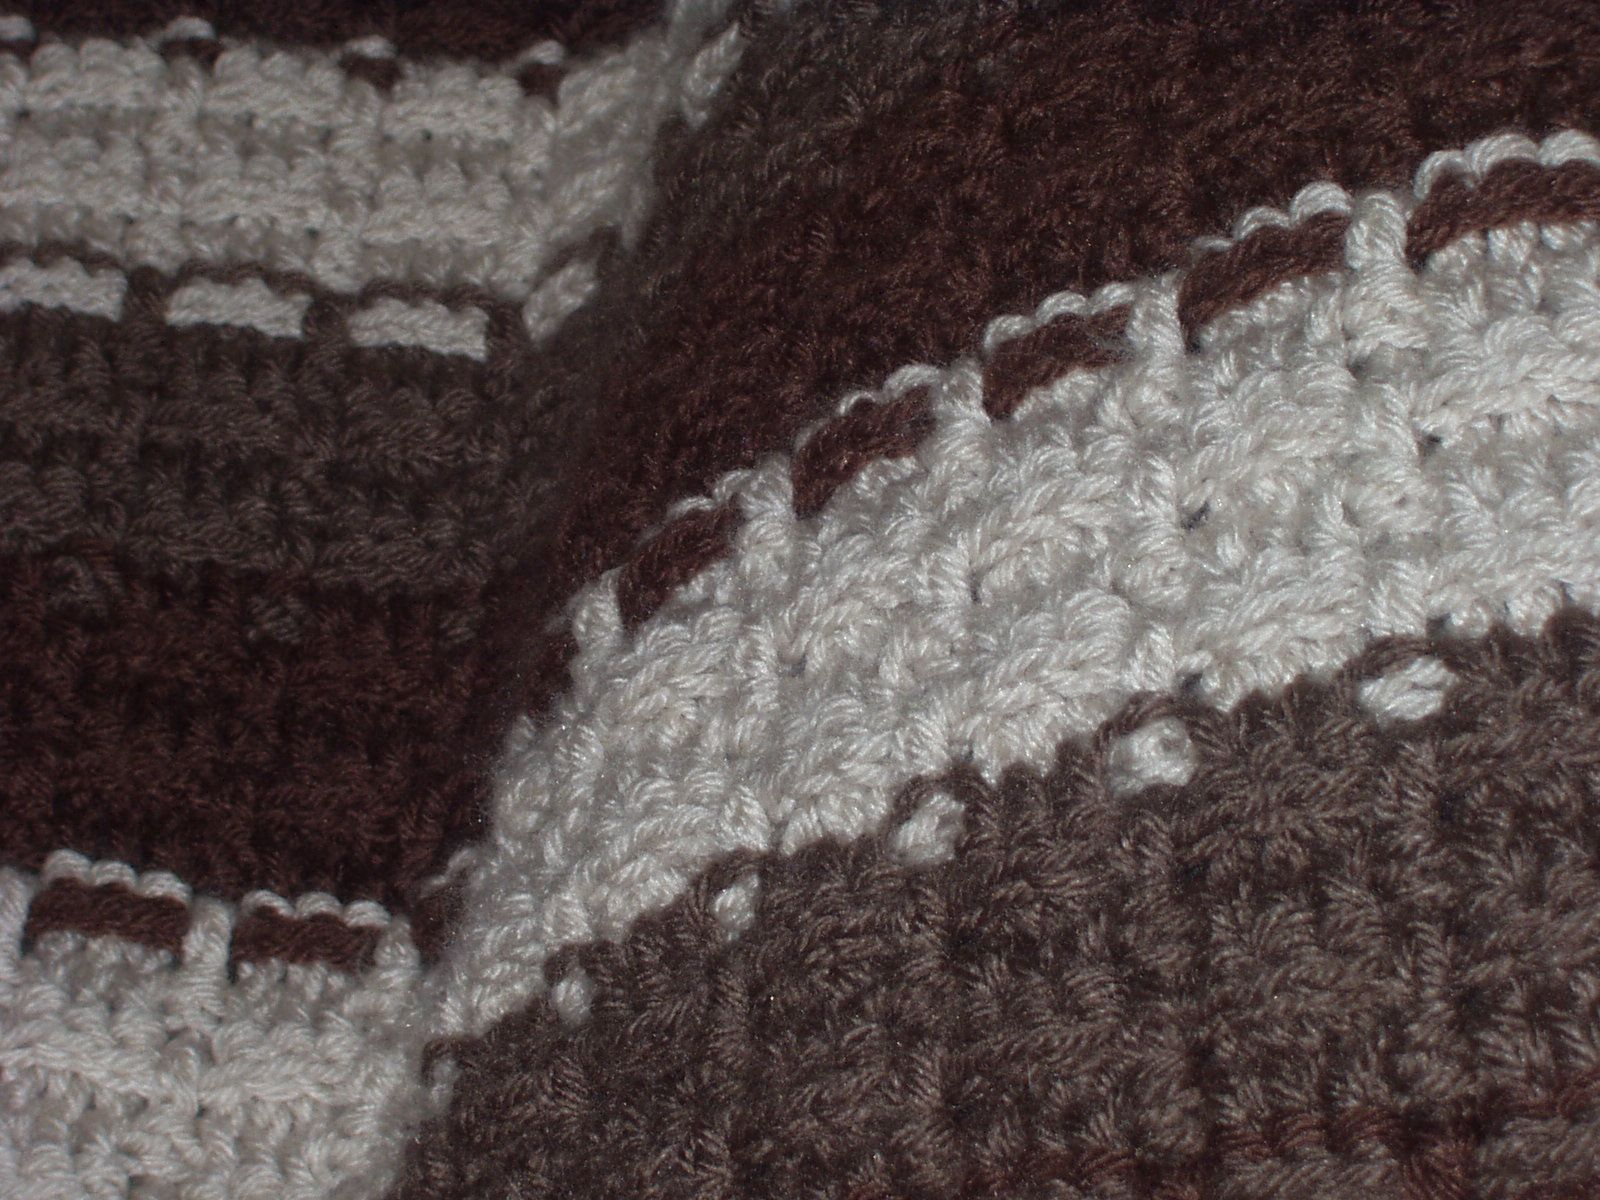 Crochet mochachino afghan free pattern crochet and afghans crochet mochachino afghan free crochet afghan patternscrocheting bankloansurffo Image collections